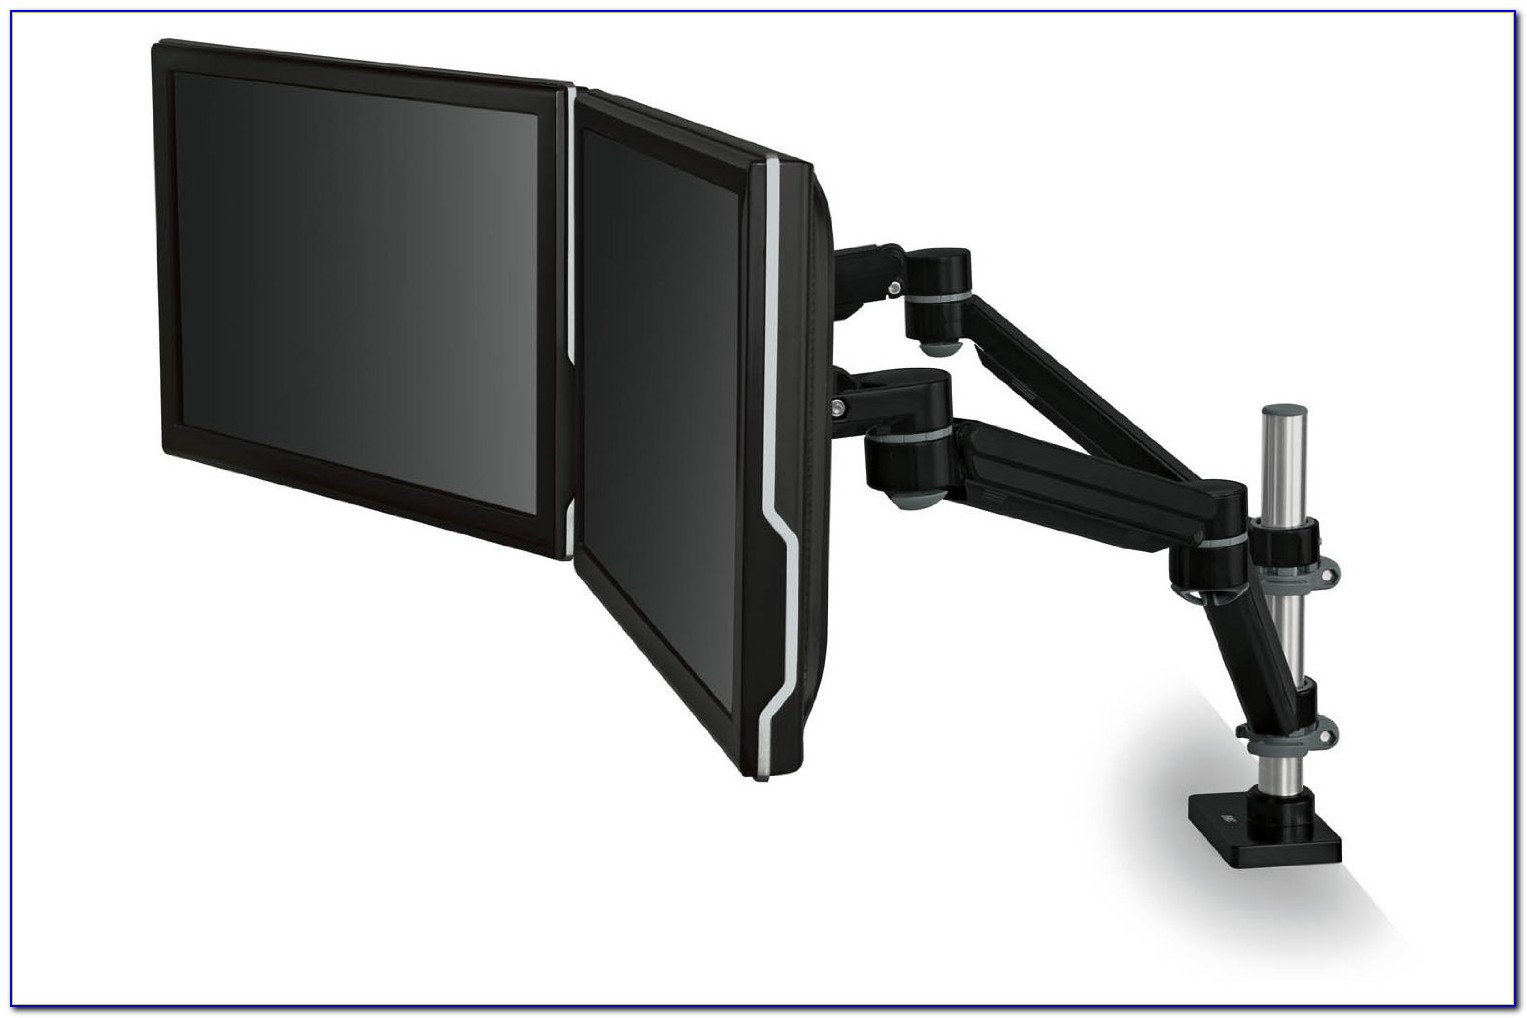 Desk Mount Dual Monitor Arm